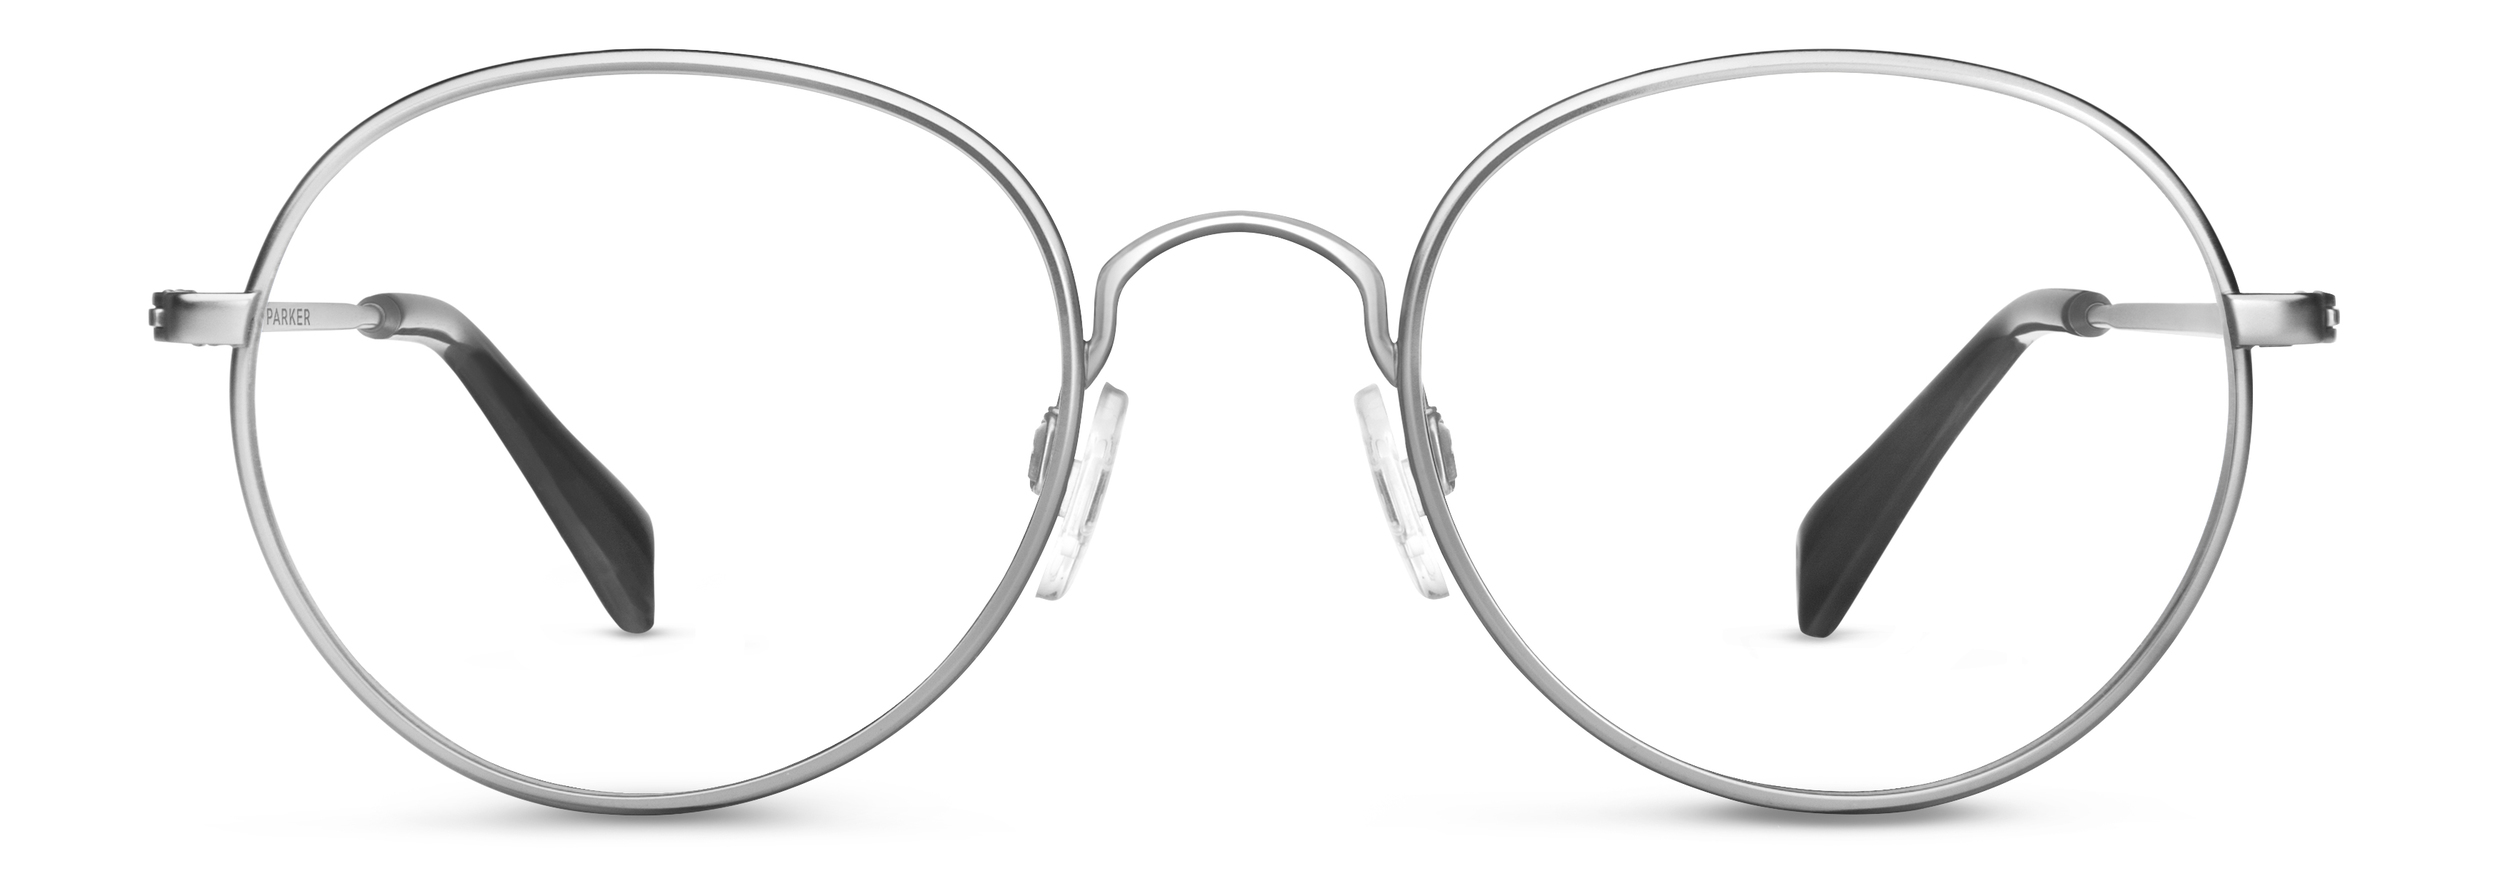 Blog_Glasses_2.jpg